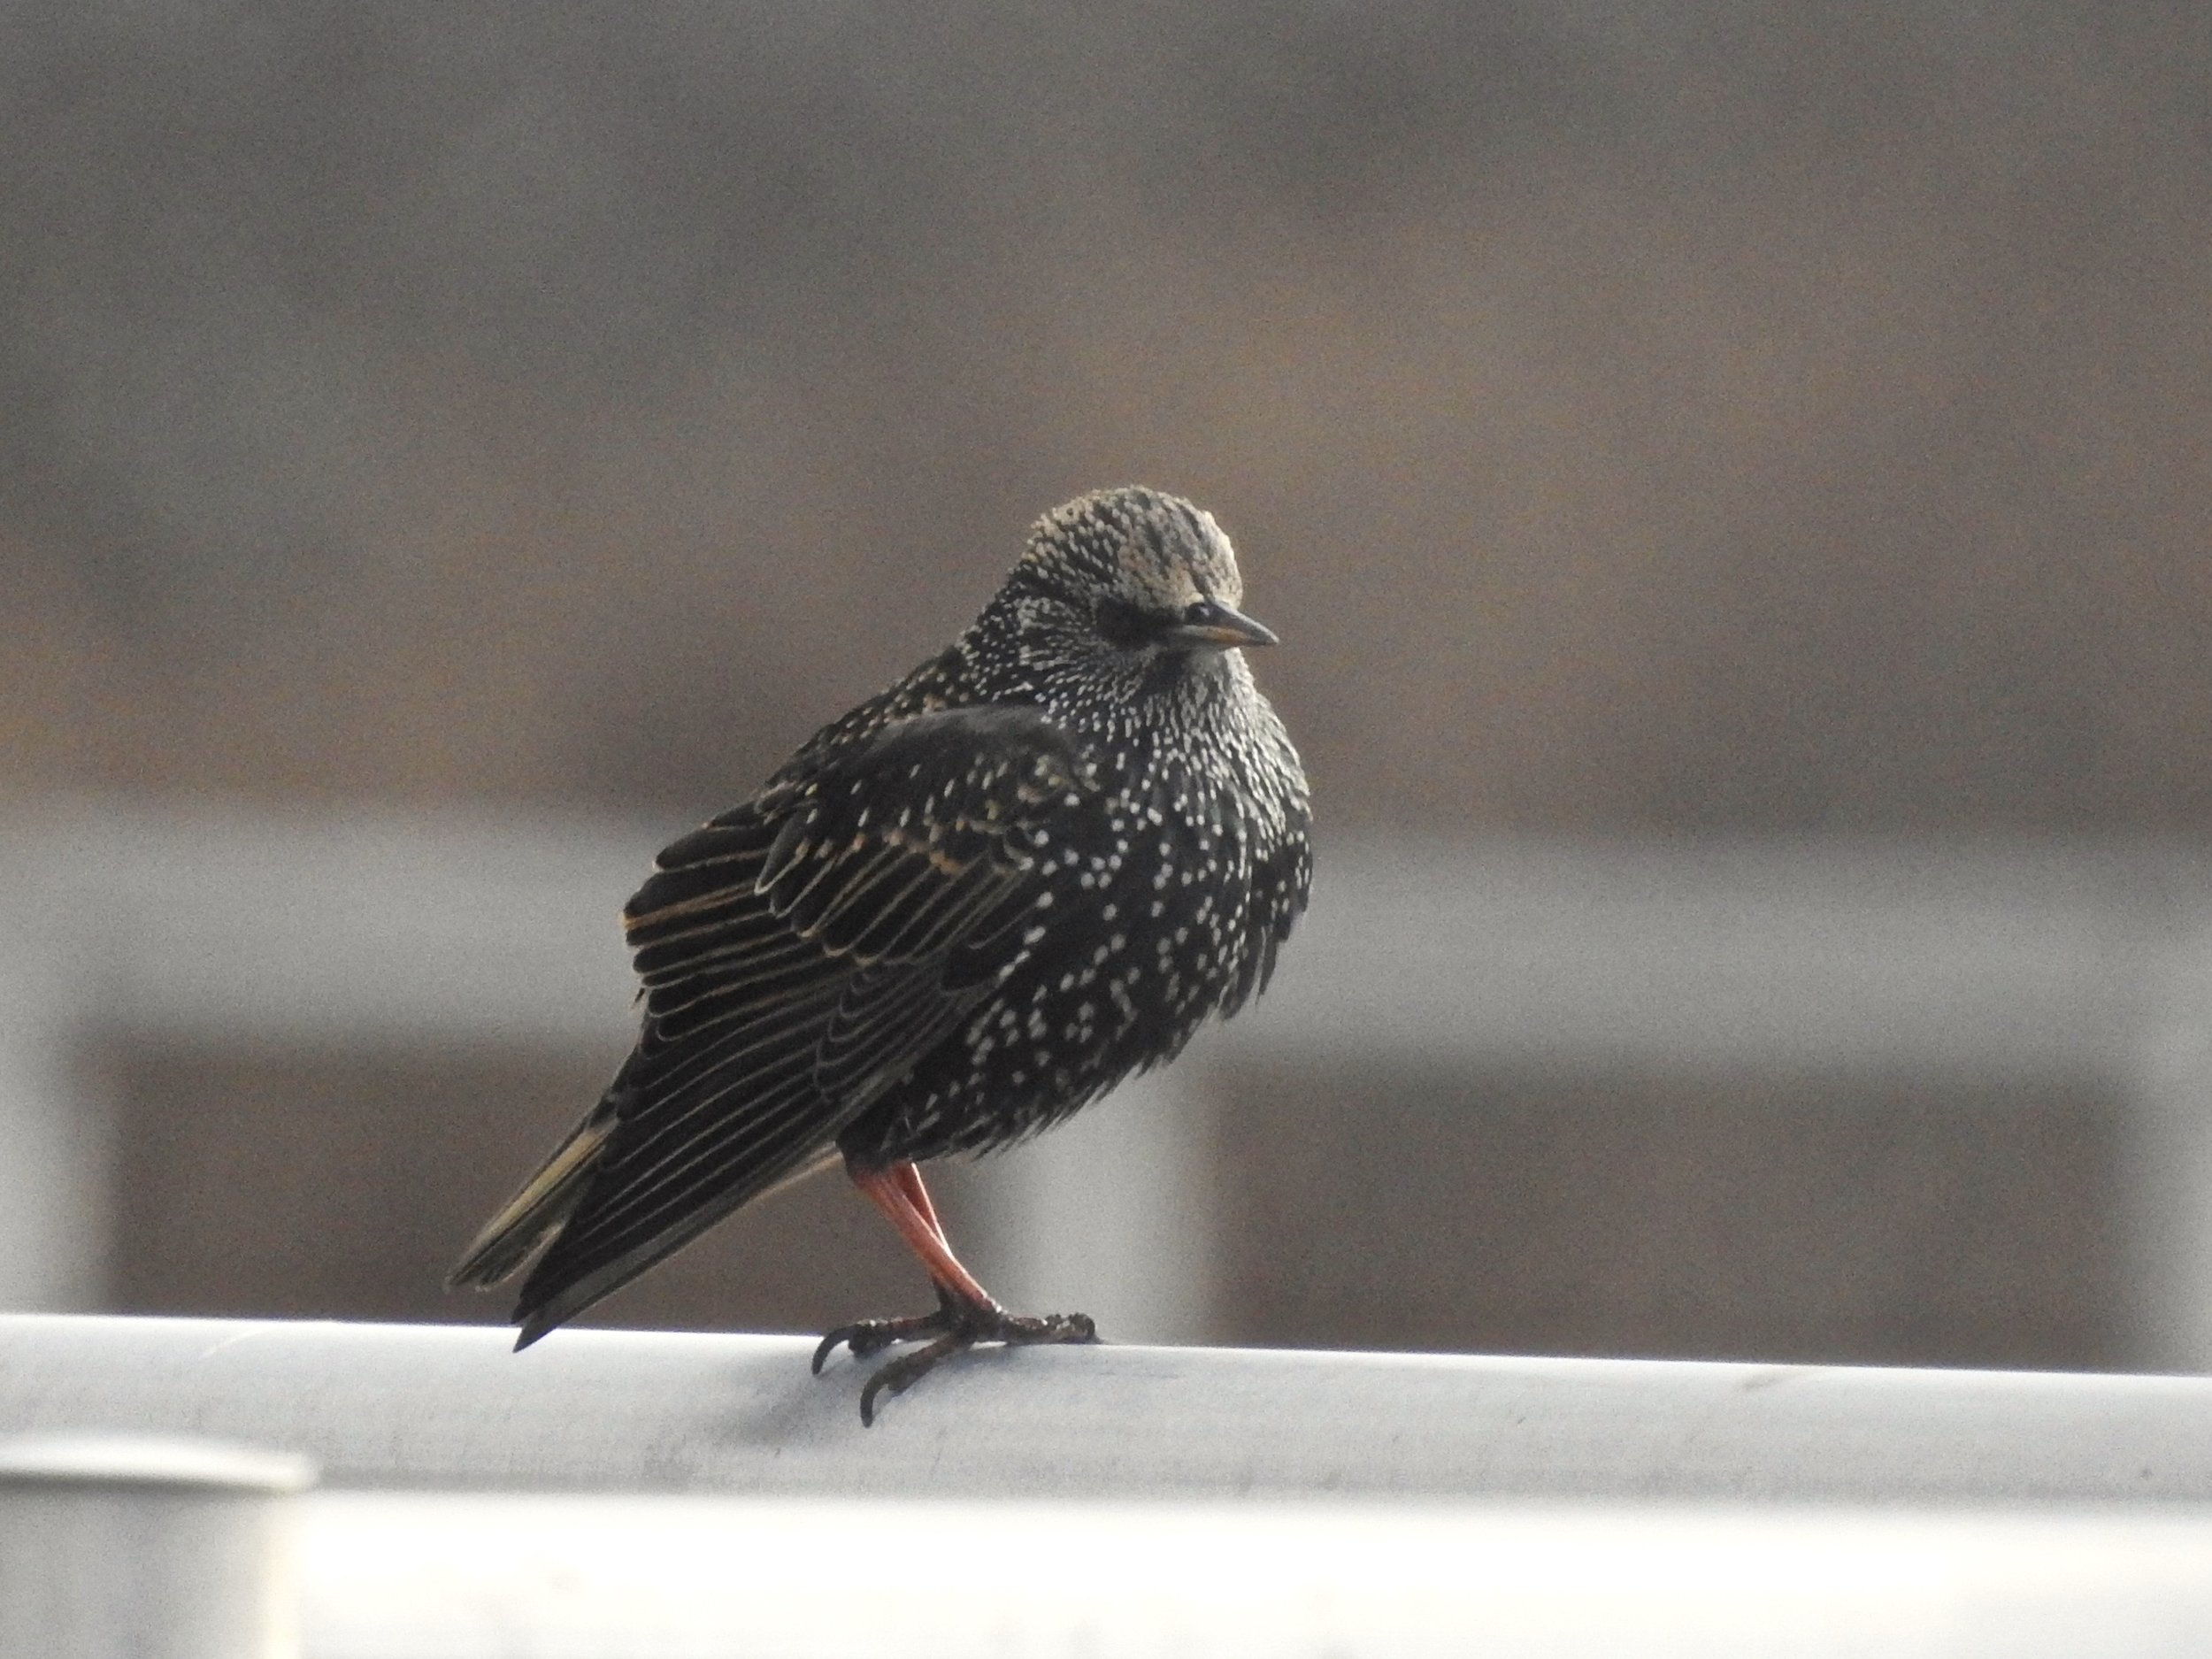 Adult starling, picture by Toribird